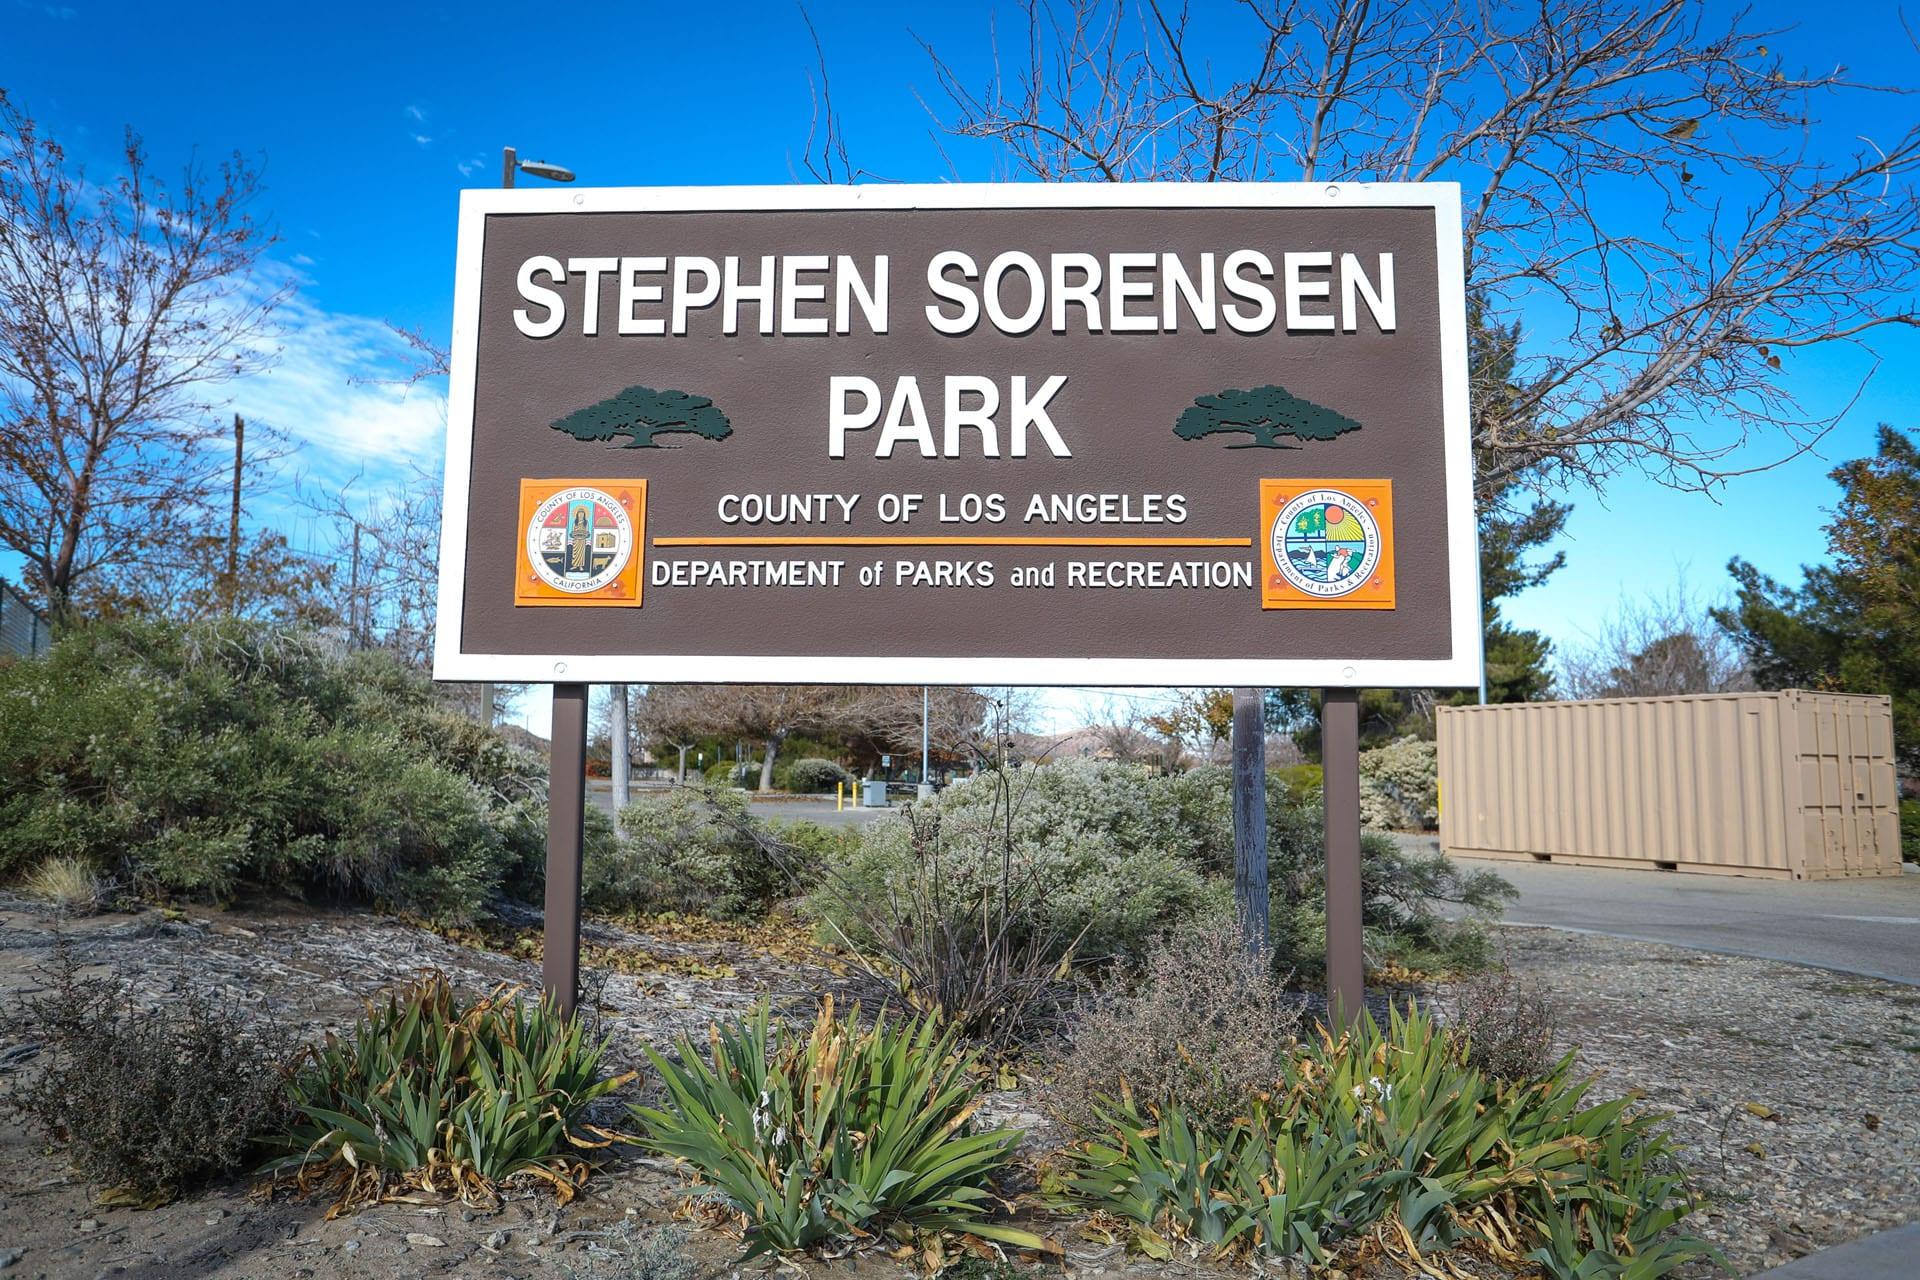 Stephen Sorensen Park sign